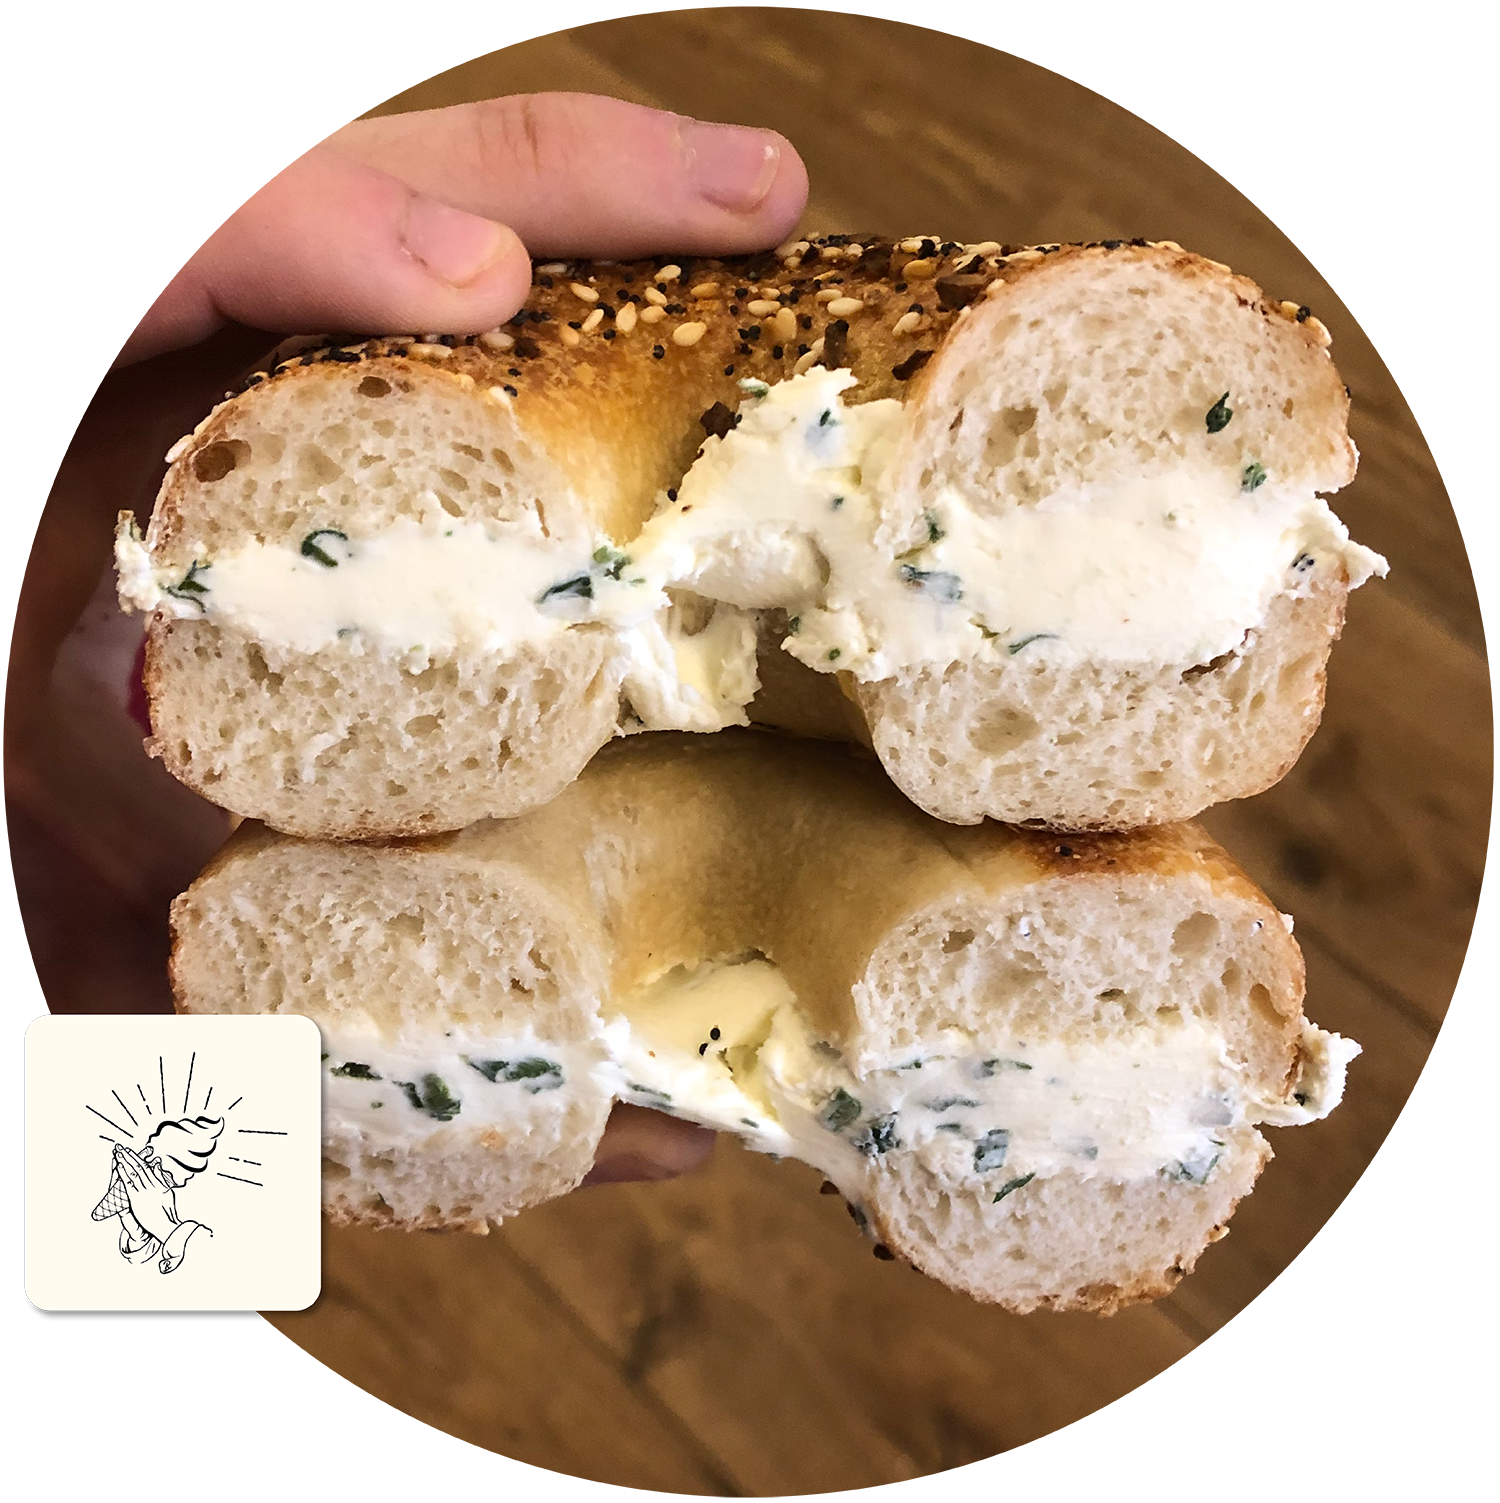 A man's hand holds a bagel cut in two with cream cheese in the middle.